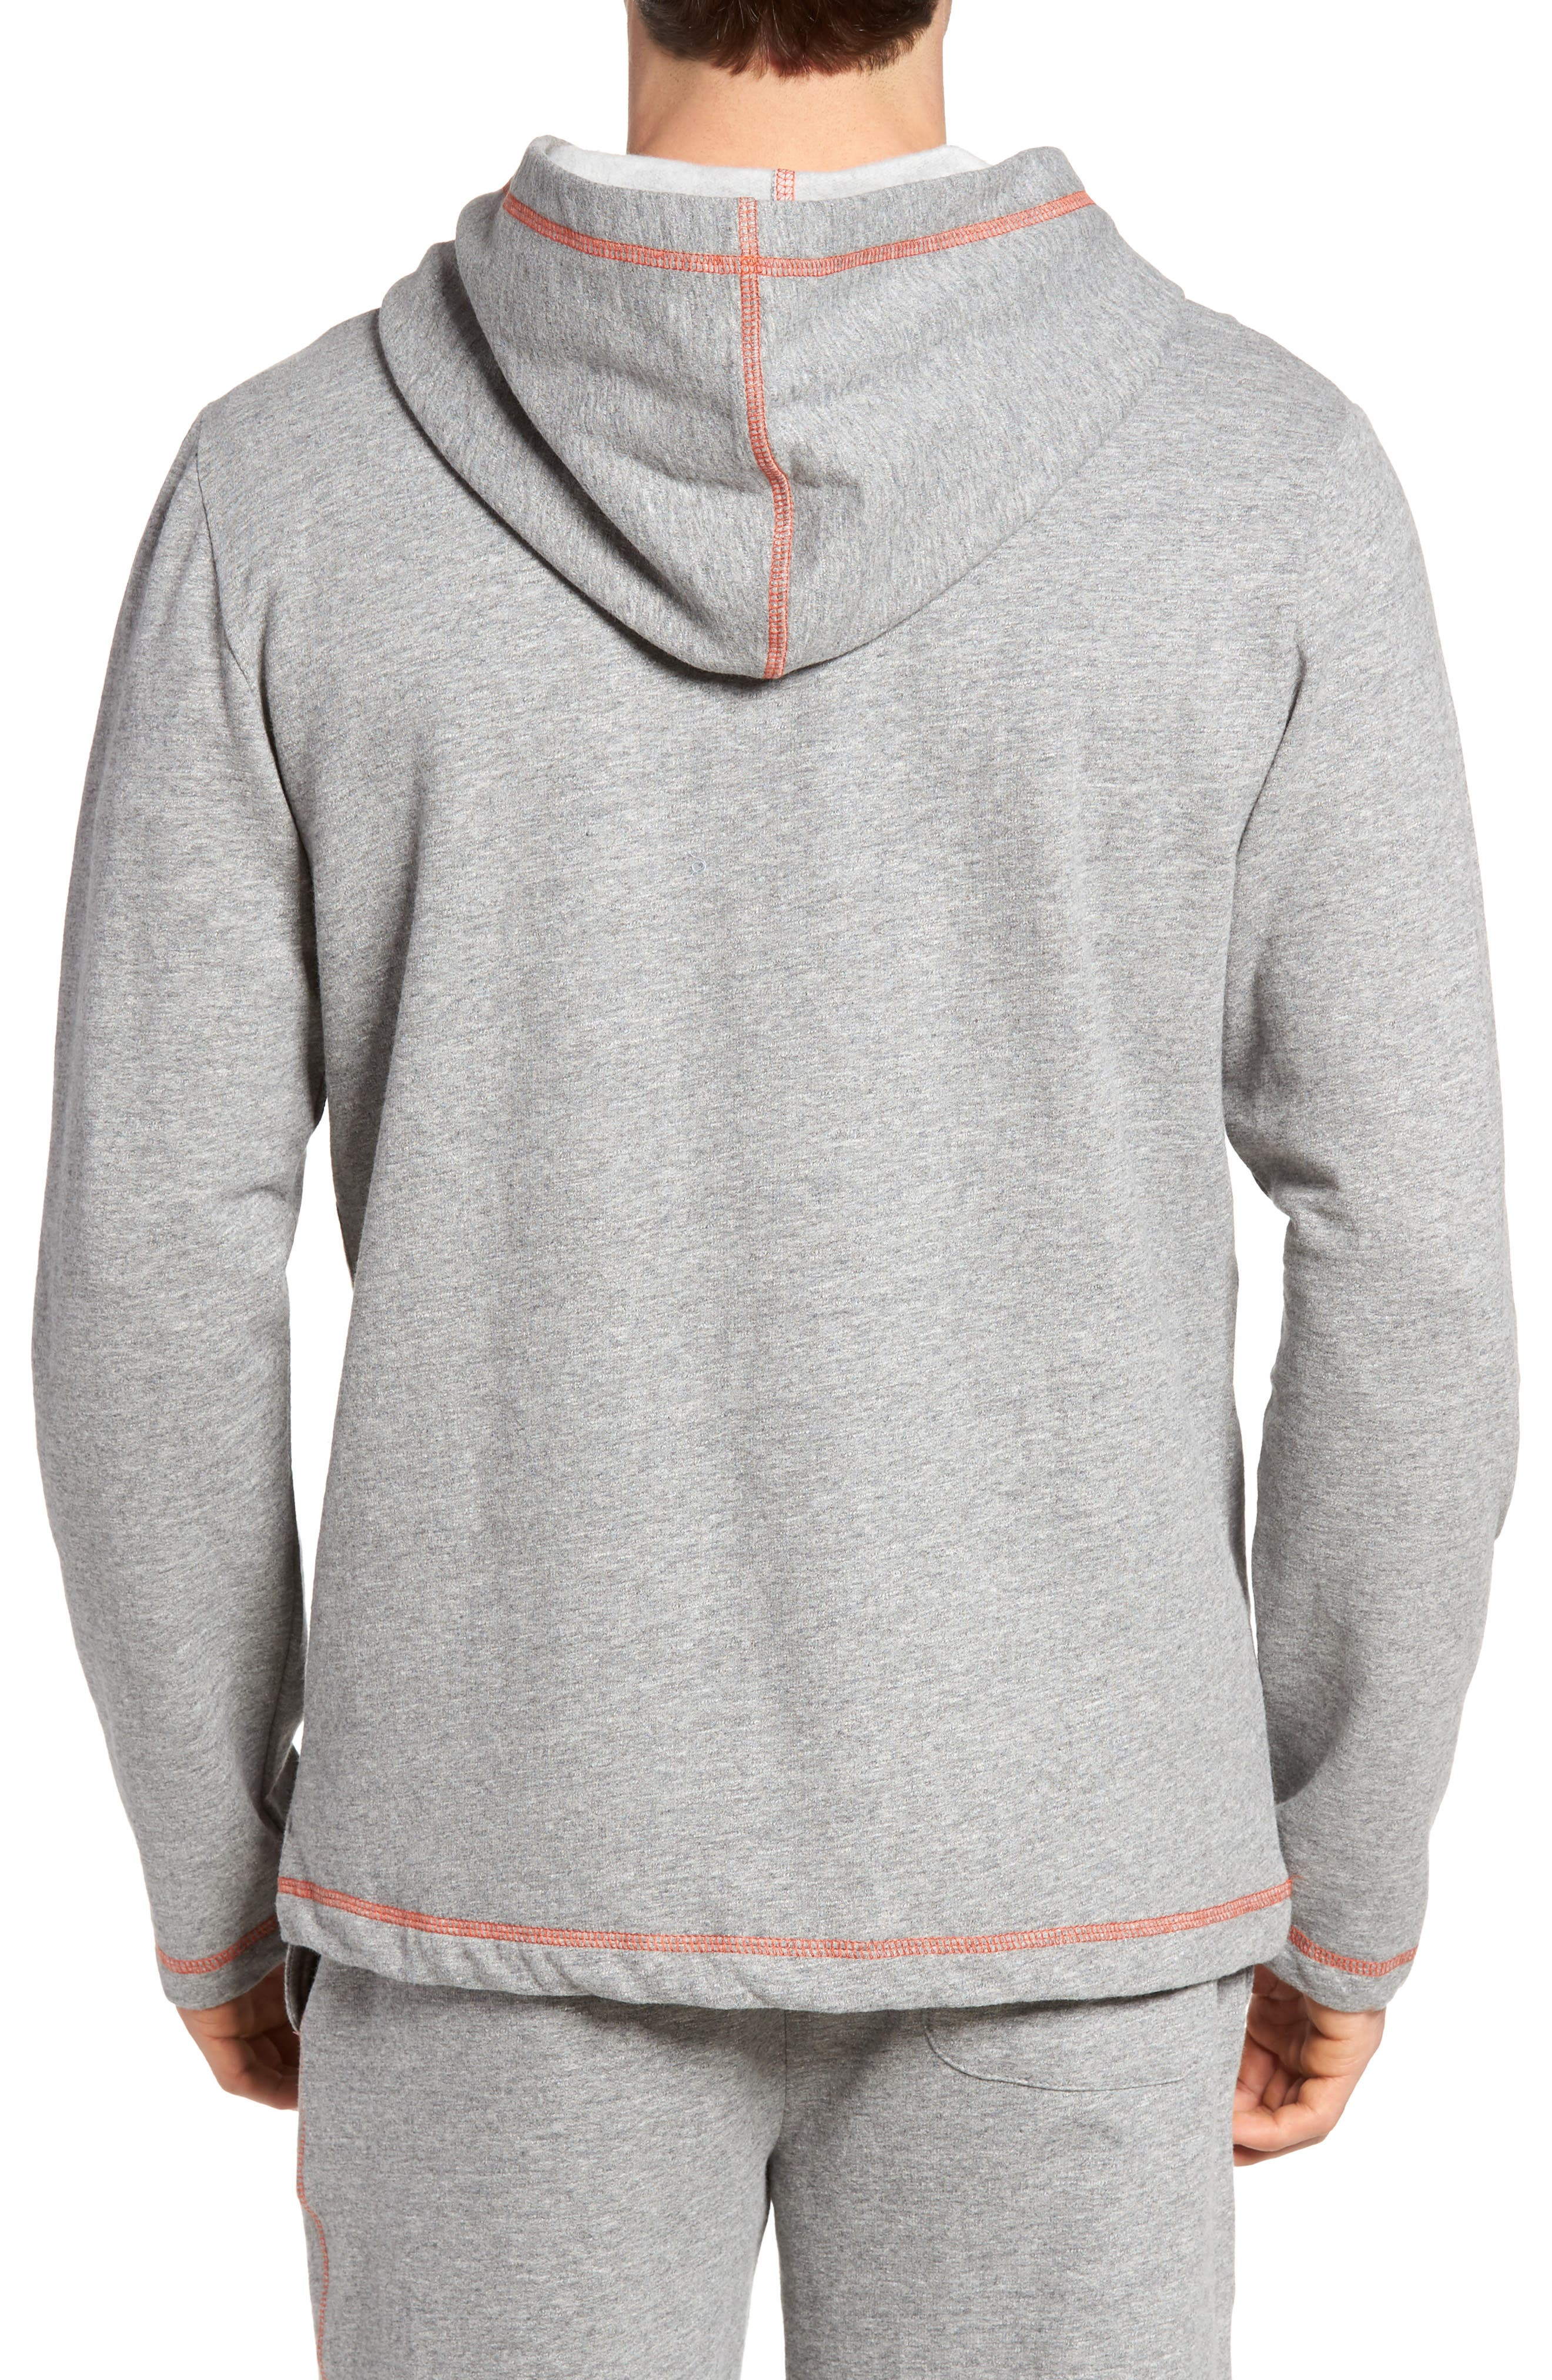 Alternate Image 2  - Robert Graham Bhooka Cotton Blend Hoodie